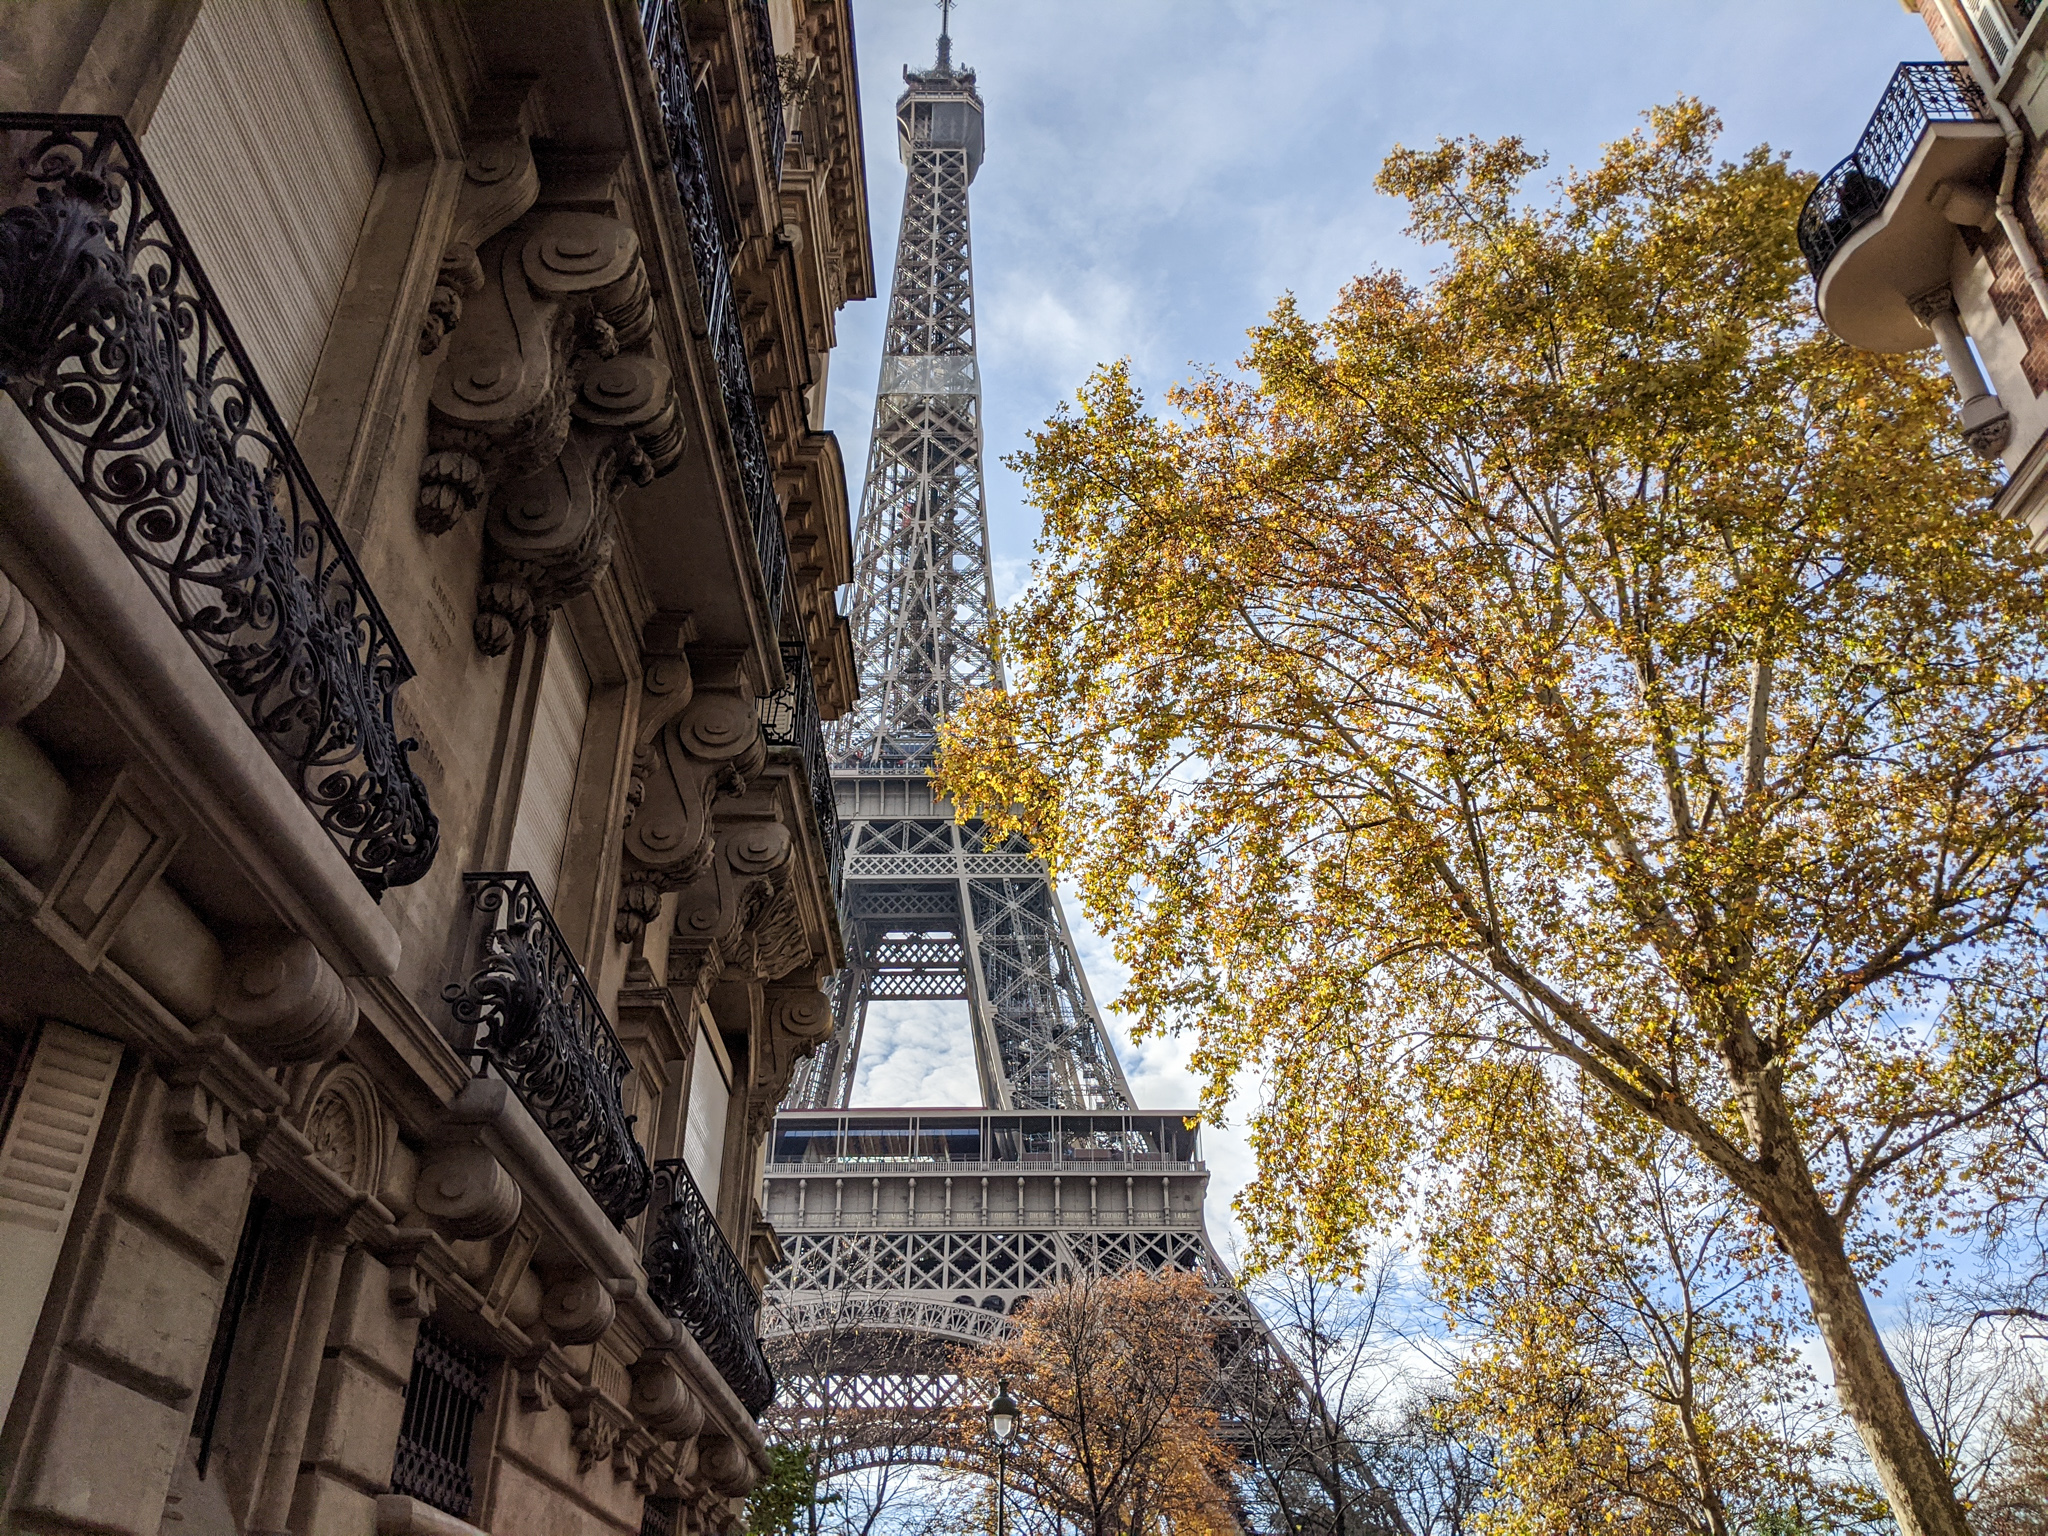 Places in Paris not to miss for the best Eiffel Tower views